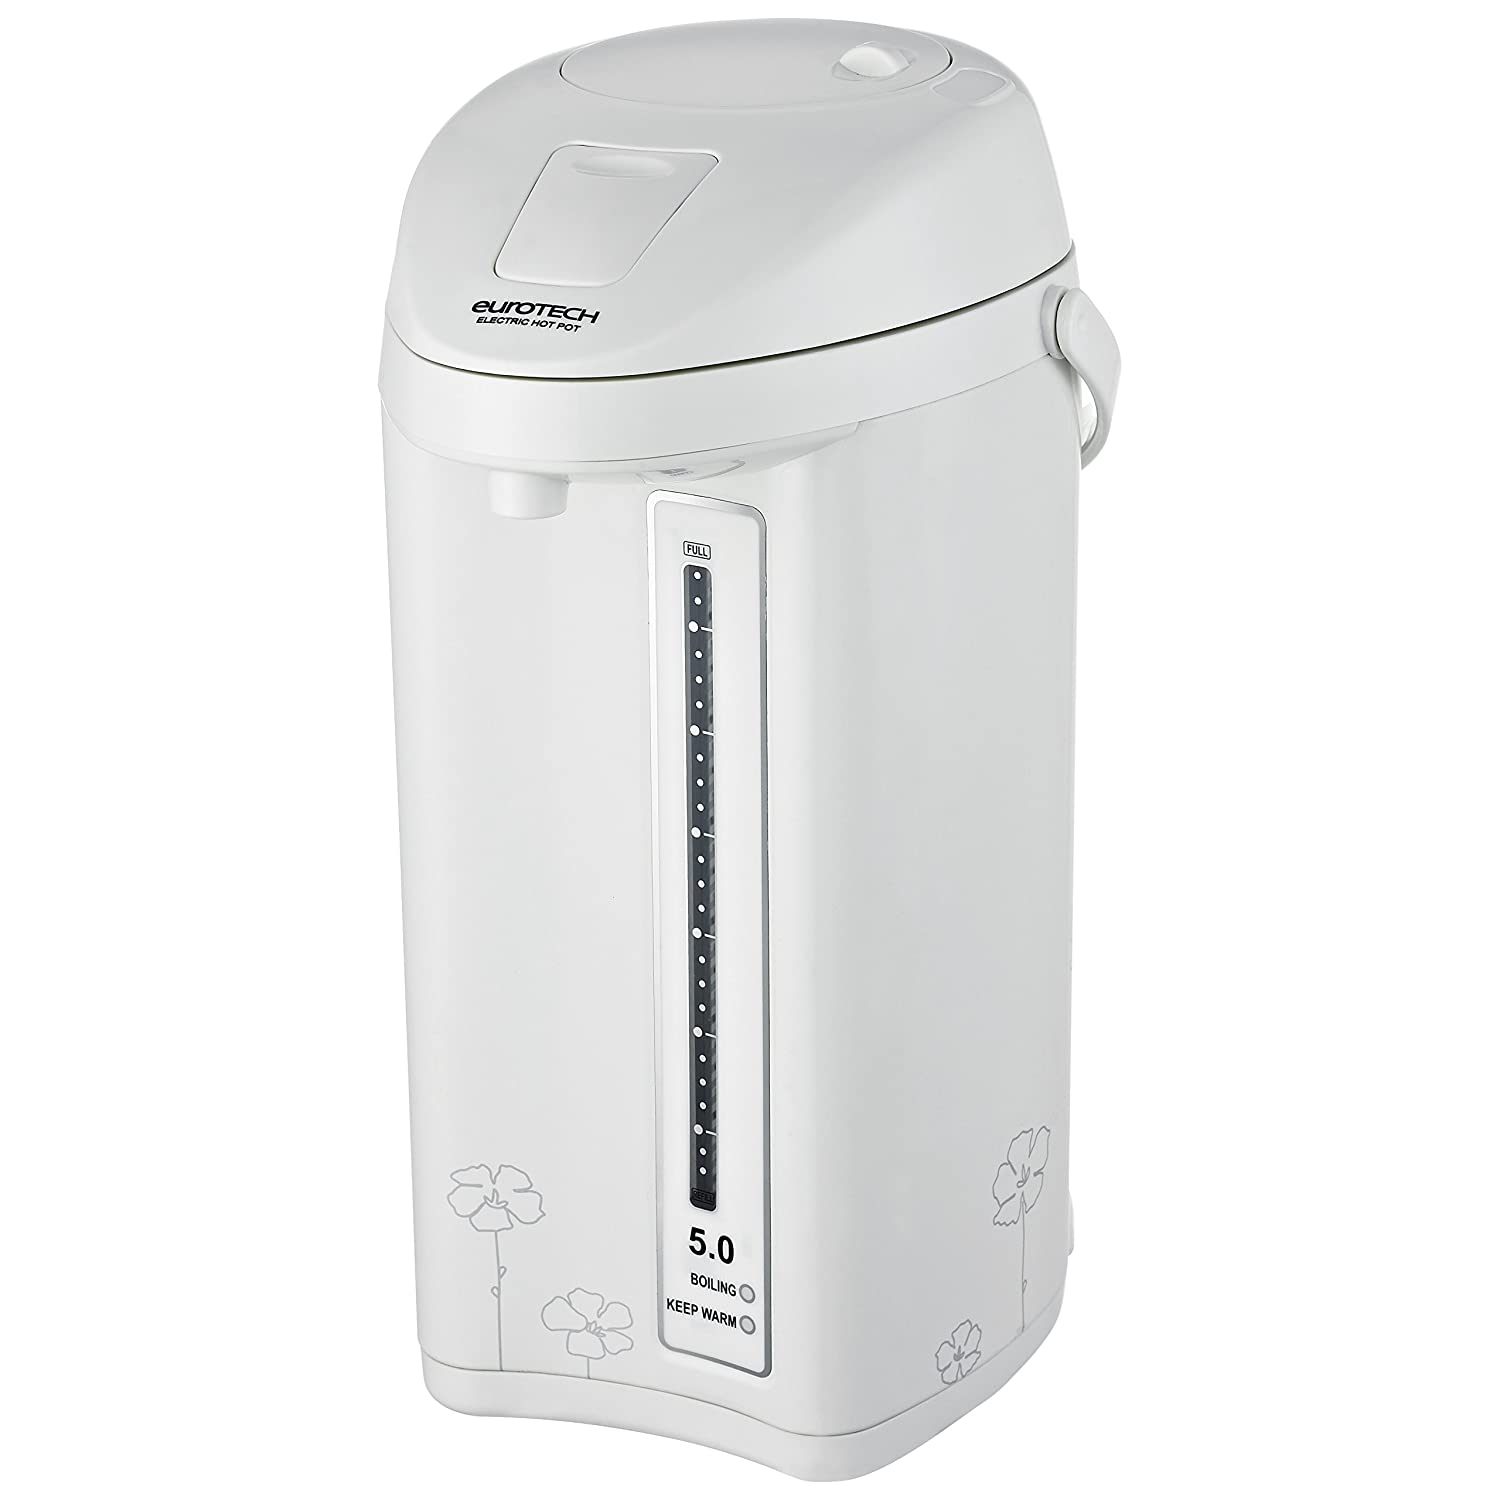 EuroTech ET5400 Fully Manual 5-Quart Electric Hot Water Pot with Safety Lock and Shabbos Mode